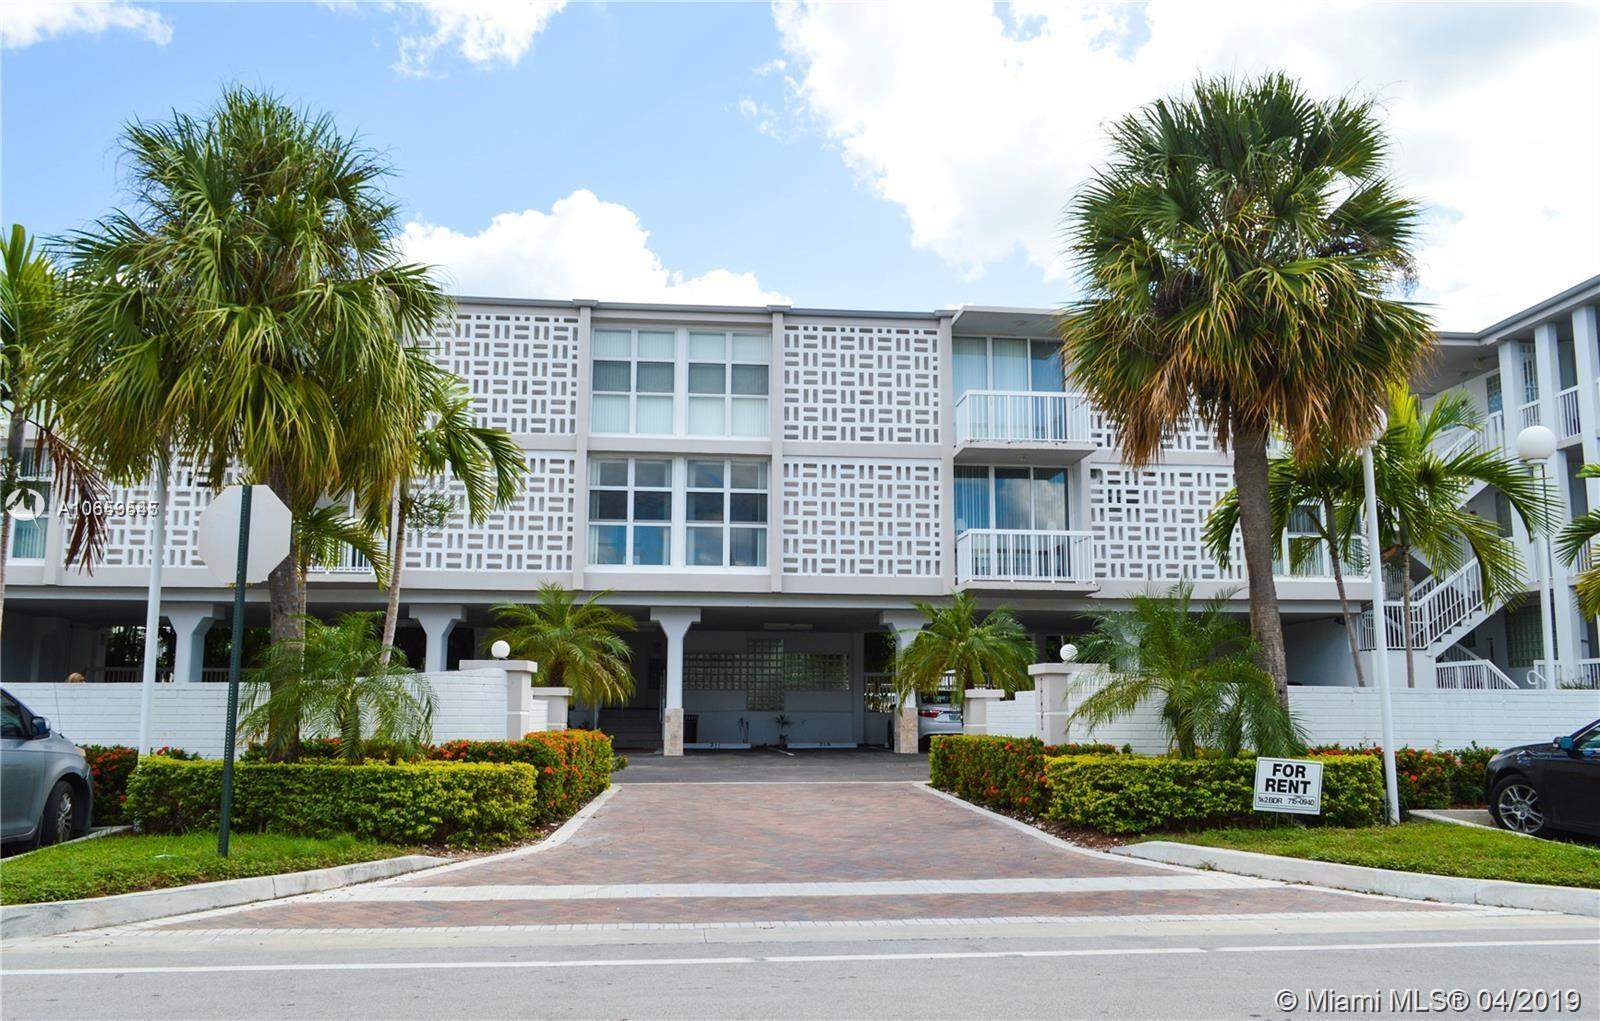 Investors, Here Is The Opportunity You Long Have Been Looking For! Amazing Income. Located On The Top Location Of Bay Harbor Island. Great Opportunity To Develop And Keep As Income Producing! Beautiful Multifamily With 23 Units: ( 8, 1 Bed 1 Bath) ( 14 2 Bed 2 Baths And A Duplex With 5 Bedrooms) Fully Renovated At The Heart Of The Highly Desirable Bay Harbor Island Neighborhood. Development Opportunity! Well-Positioned Property Located. The Property Is In Excellent Condition. Great Location. Walking Distance To House Of Worship, Best Public School In Dade County, The Beach And The World Famous Bal Harbor Shops.